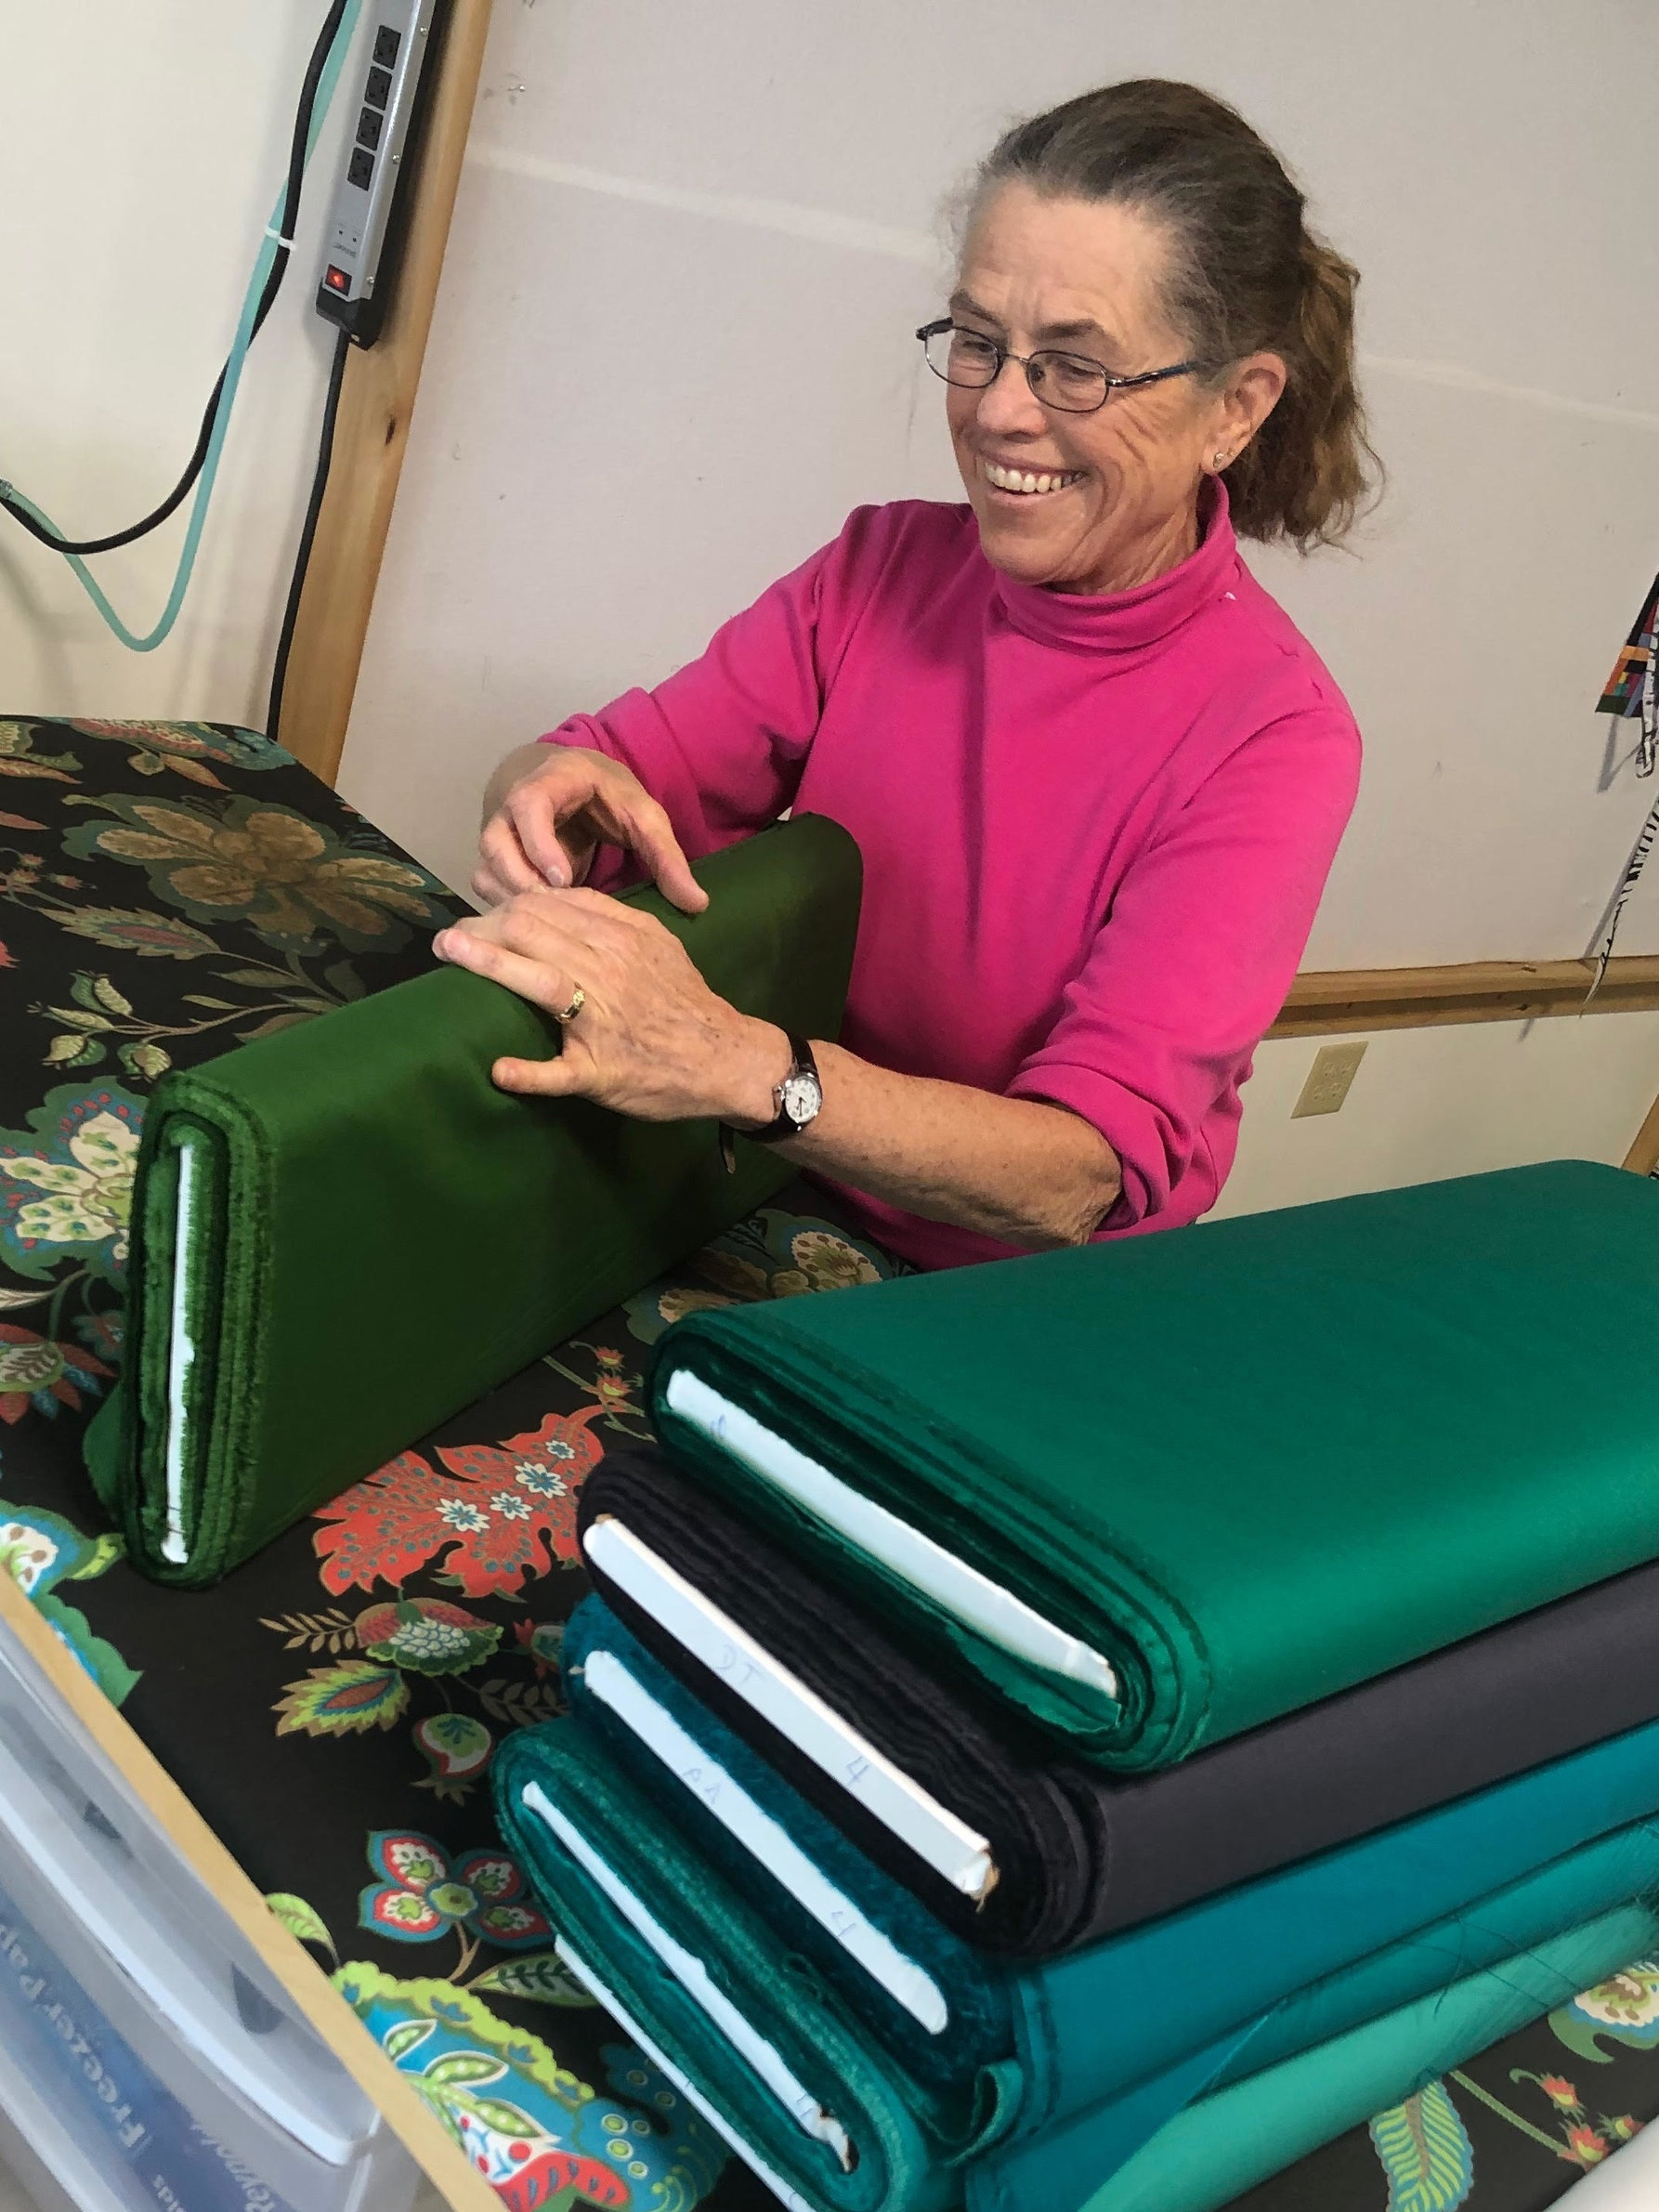 Carolyn Zanko getting the fabrics ready for cutting.